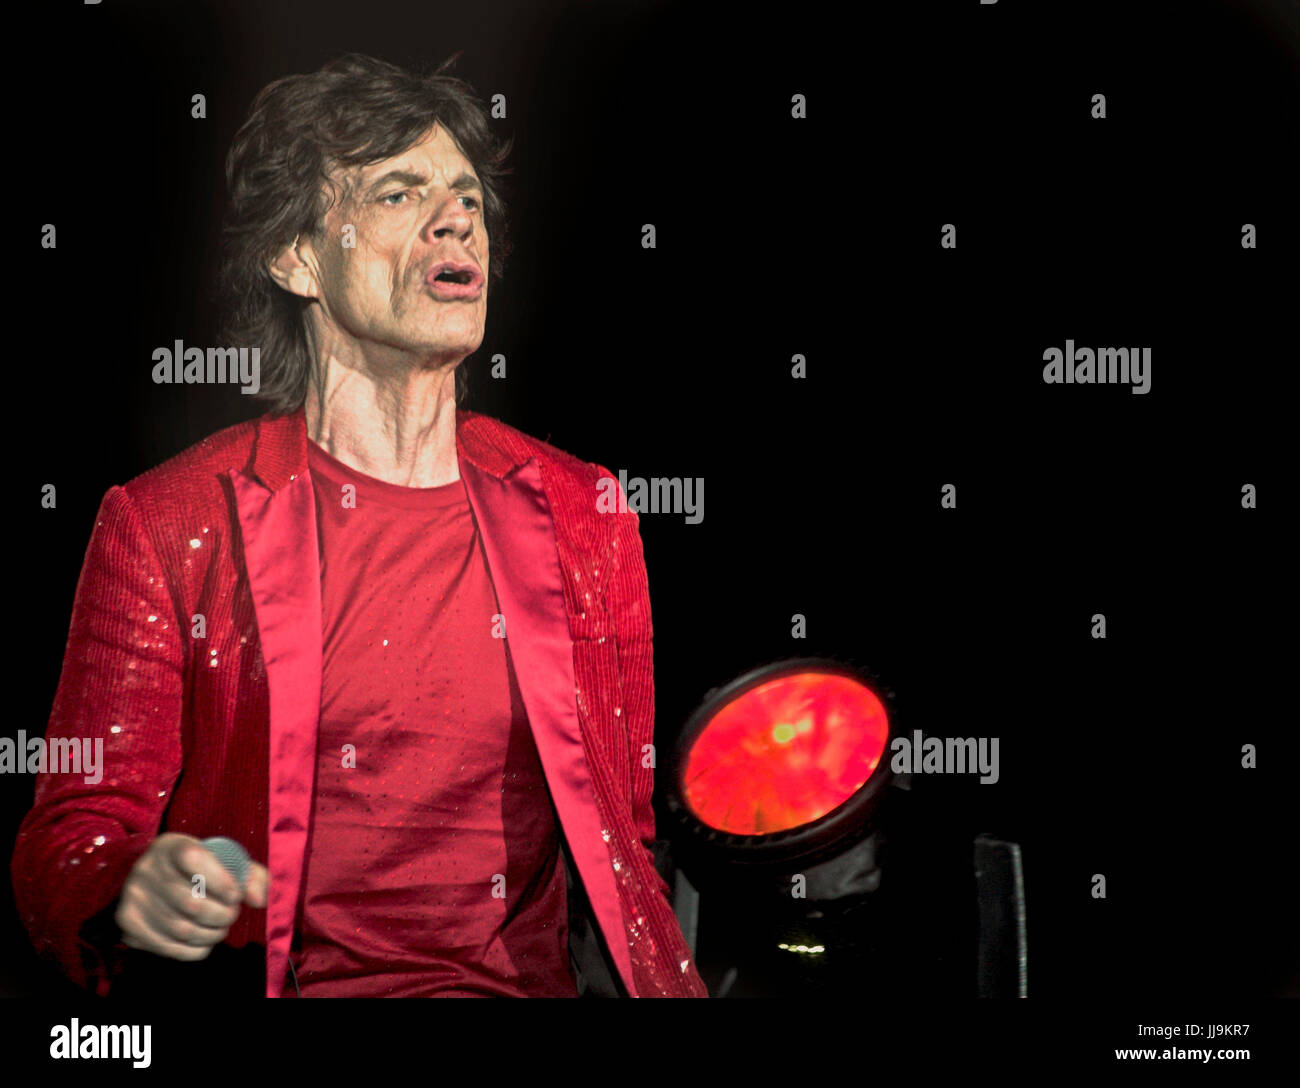 Mick Jagger Rolling Stones on stage in red jacket - Stock Image